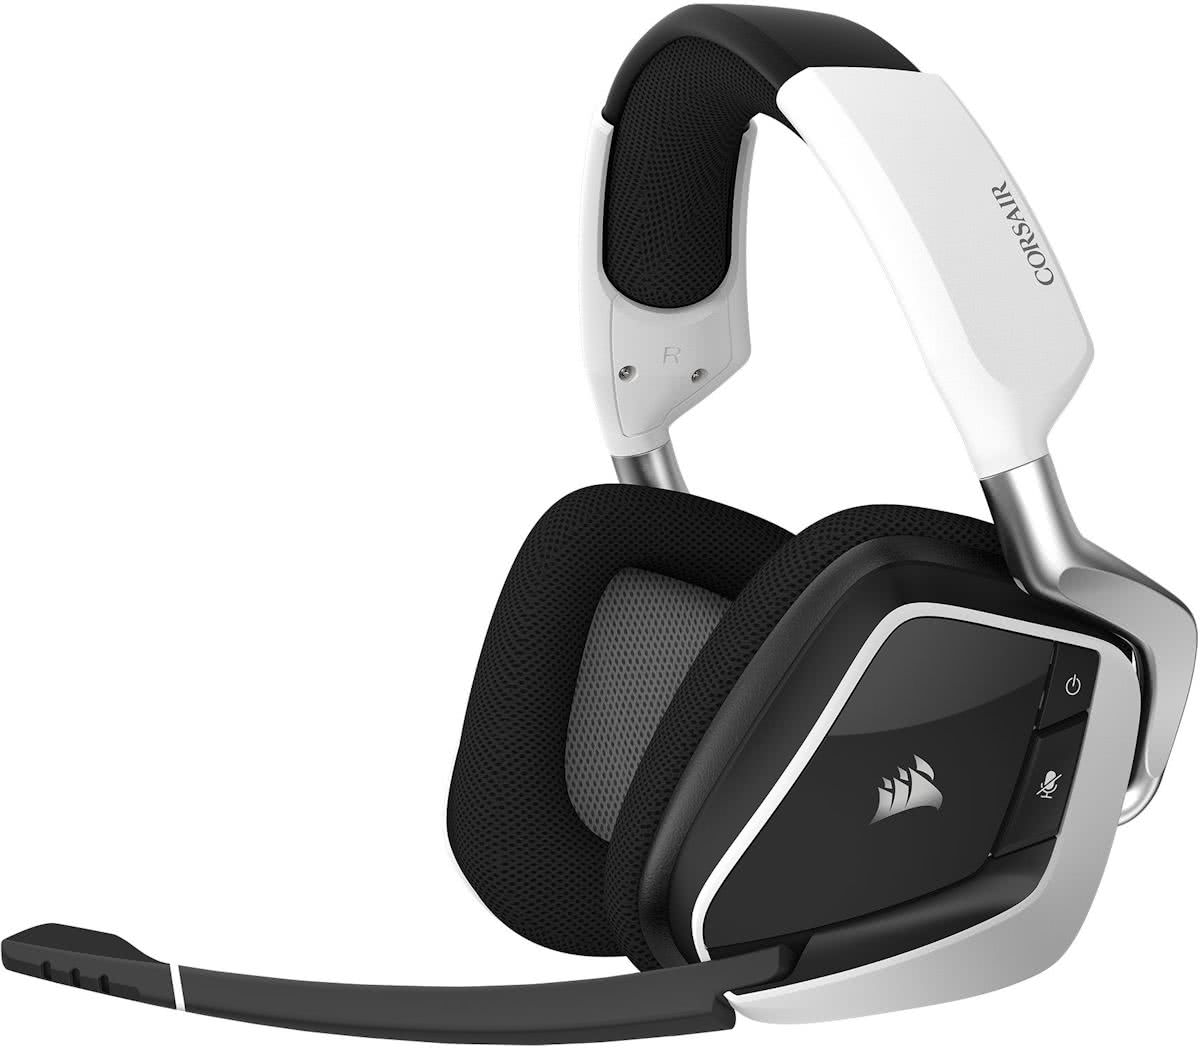 Corsair Void Pro RGB - Draadloze Gaming Headset - Wit - PC